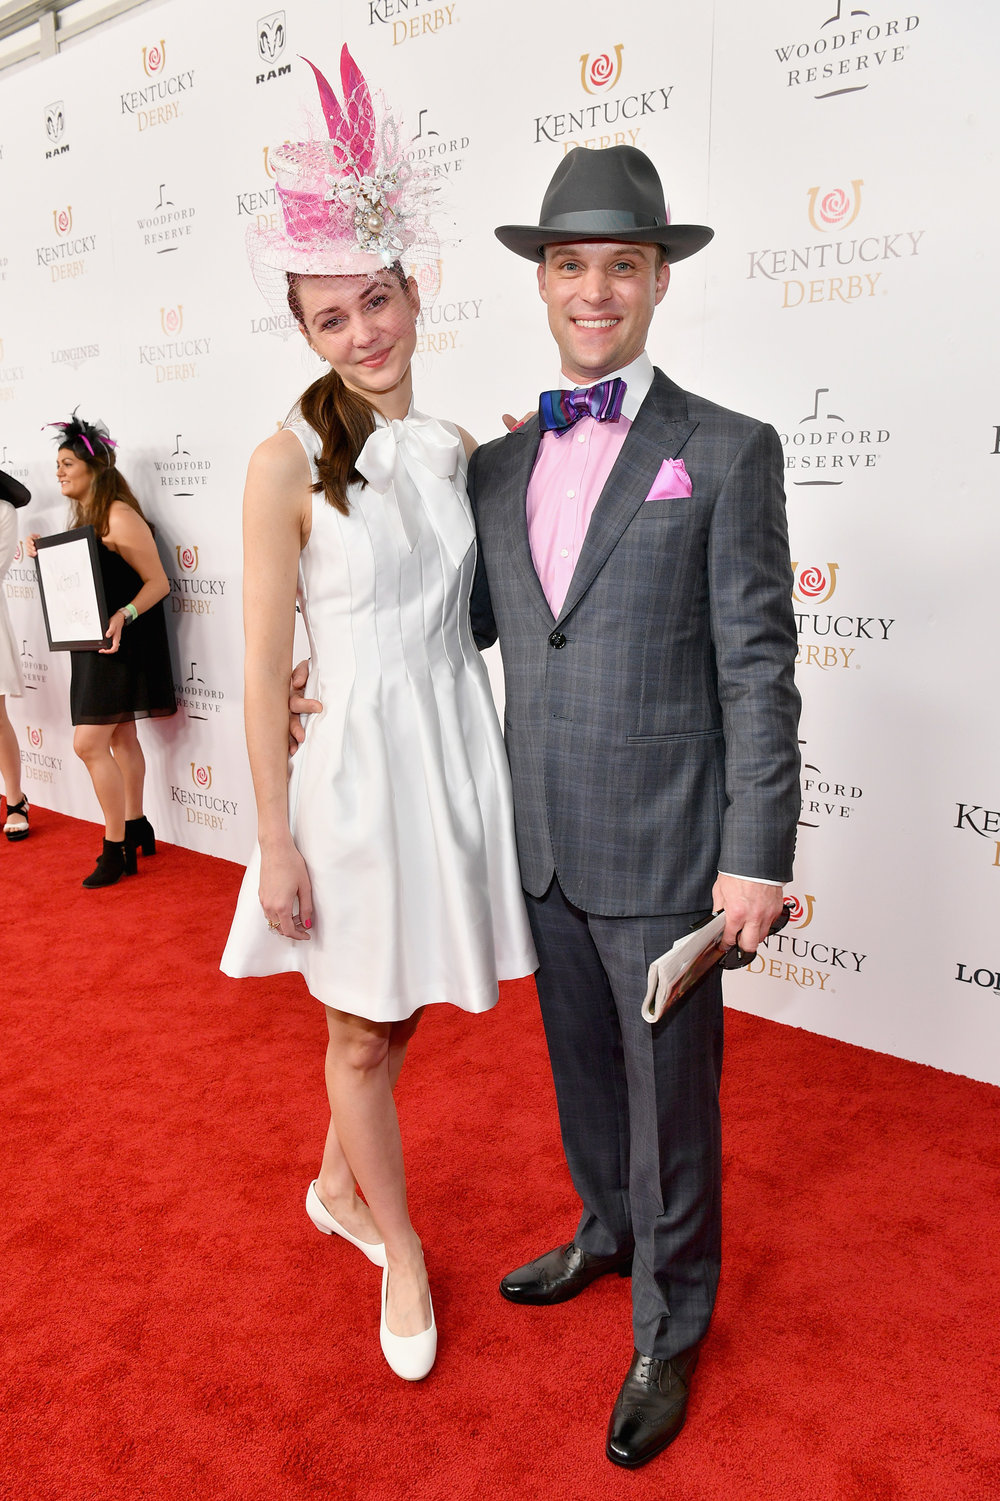 LOUISVILLE, KY - MAY 05:  Actor Jesse Spencer attend Kentucky Derby 144 on May 5, 2018 in Louisville, Kentucky.  (Photo by Dia Dipasupil/Getty Images for Chruchill Downs) *** Local Caption *** Jesse Spencer